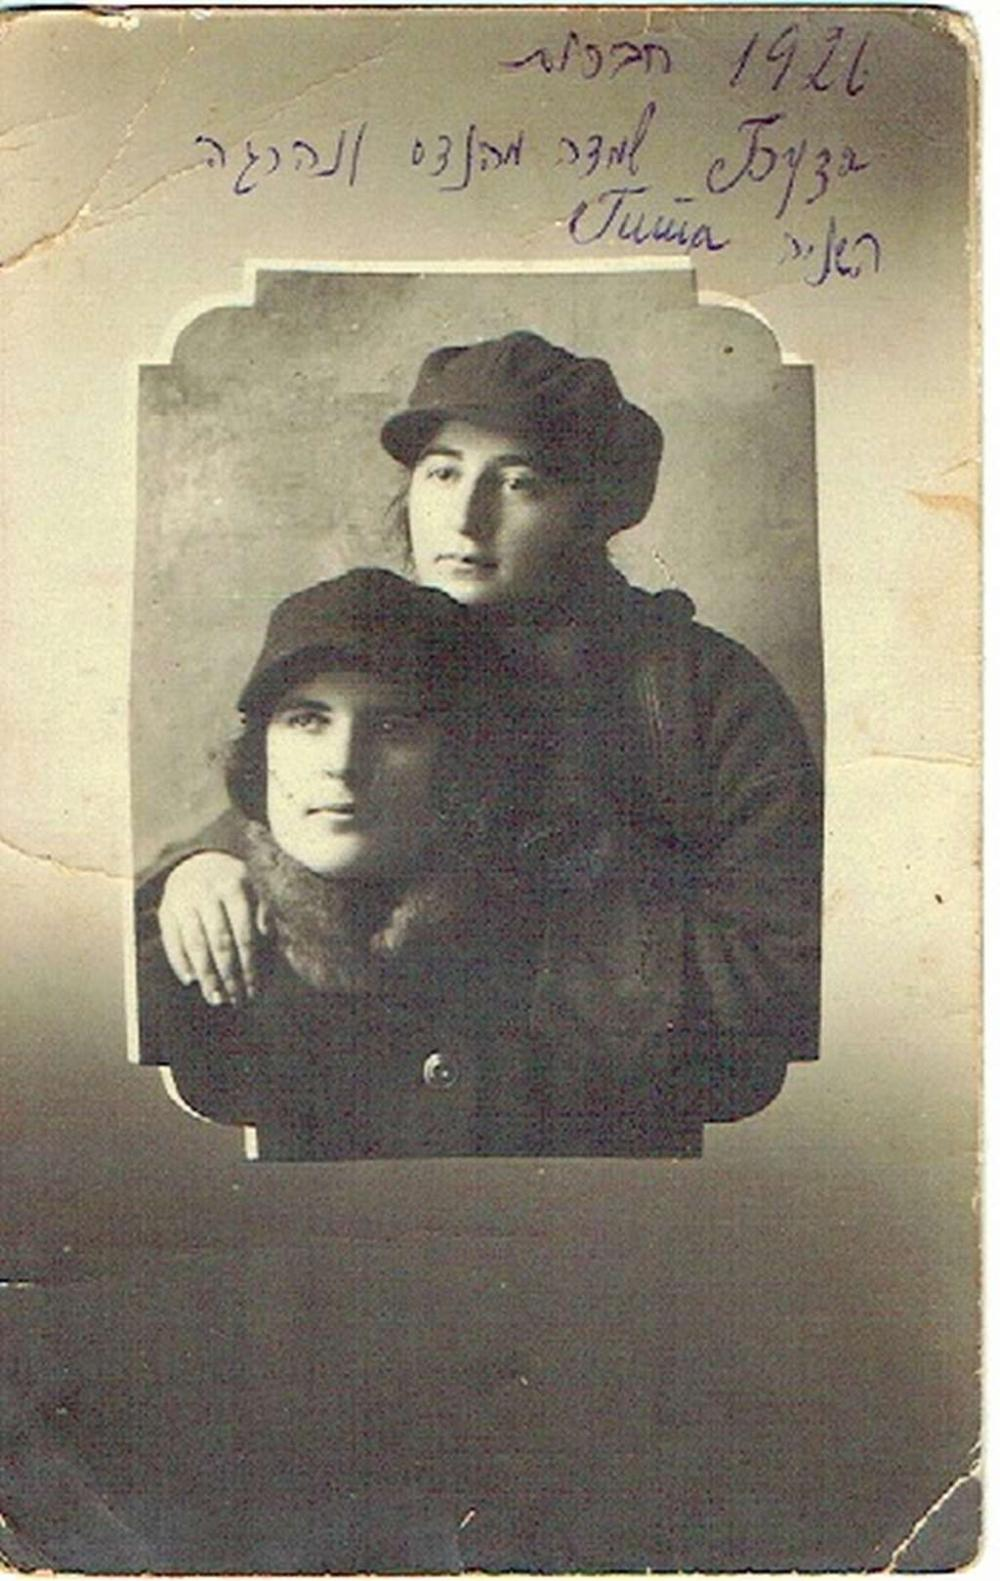 Antique photo of Jewish women, Farewell photo to their friend Futerman who is leafing for Palestine, 1926 Ukraine, in Russian and Hebrew,